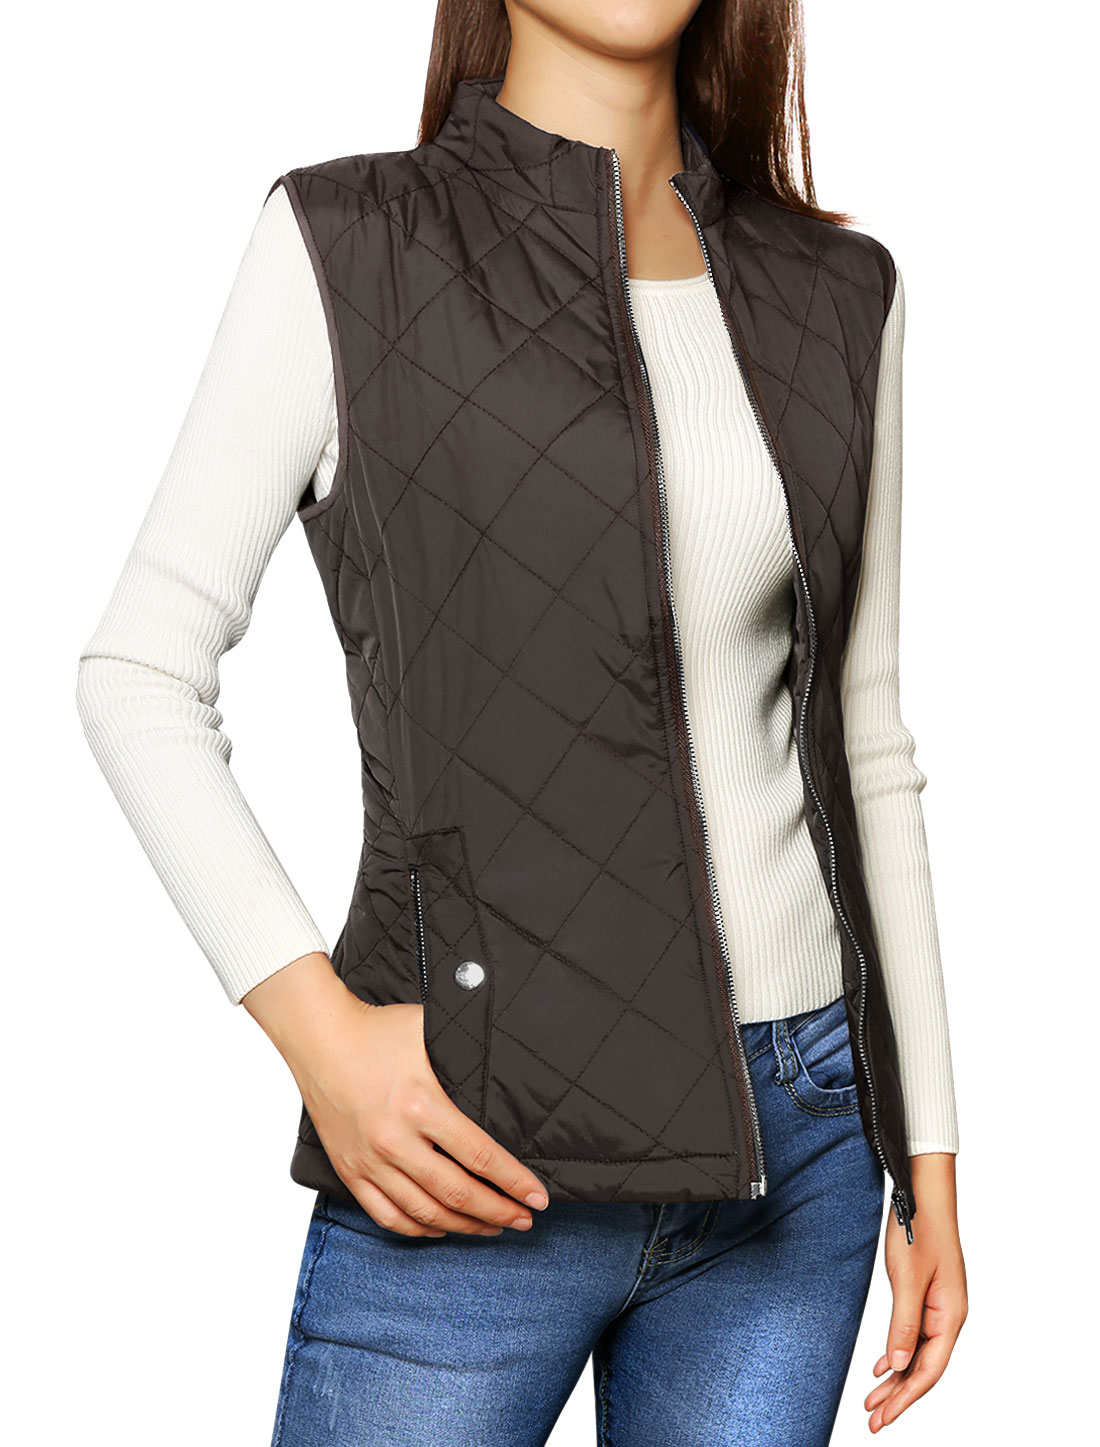 Allegra K Woman Zipper Stand Collar Slant Pockets Quilted Padded Vest Brown XL